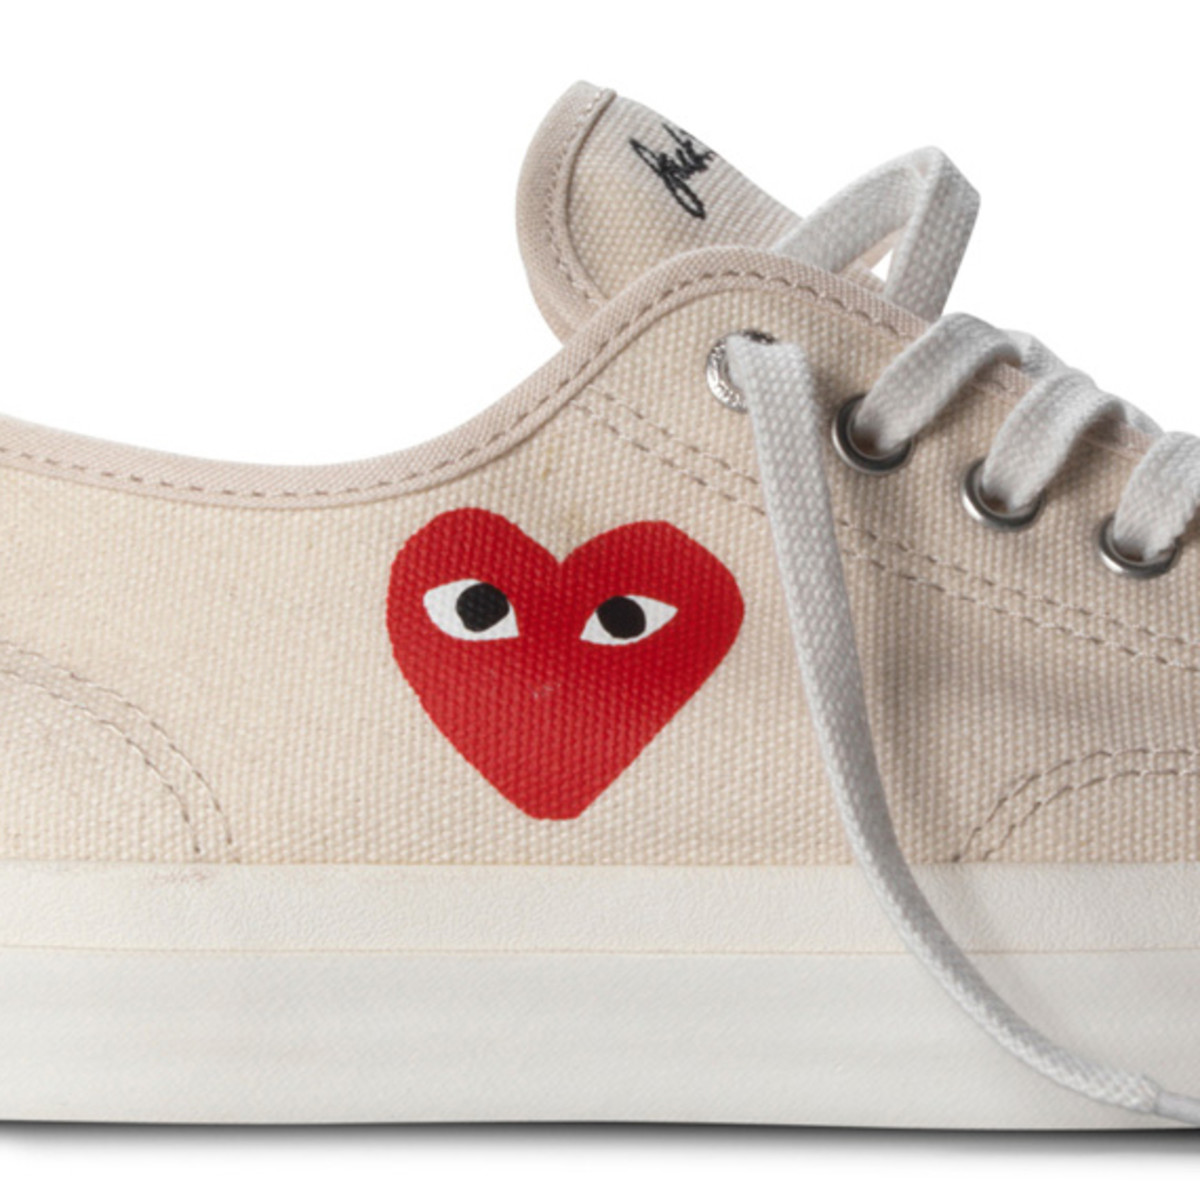 comme-des-garcon-play-converse-jack-purcell-01